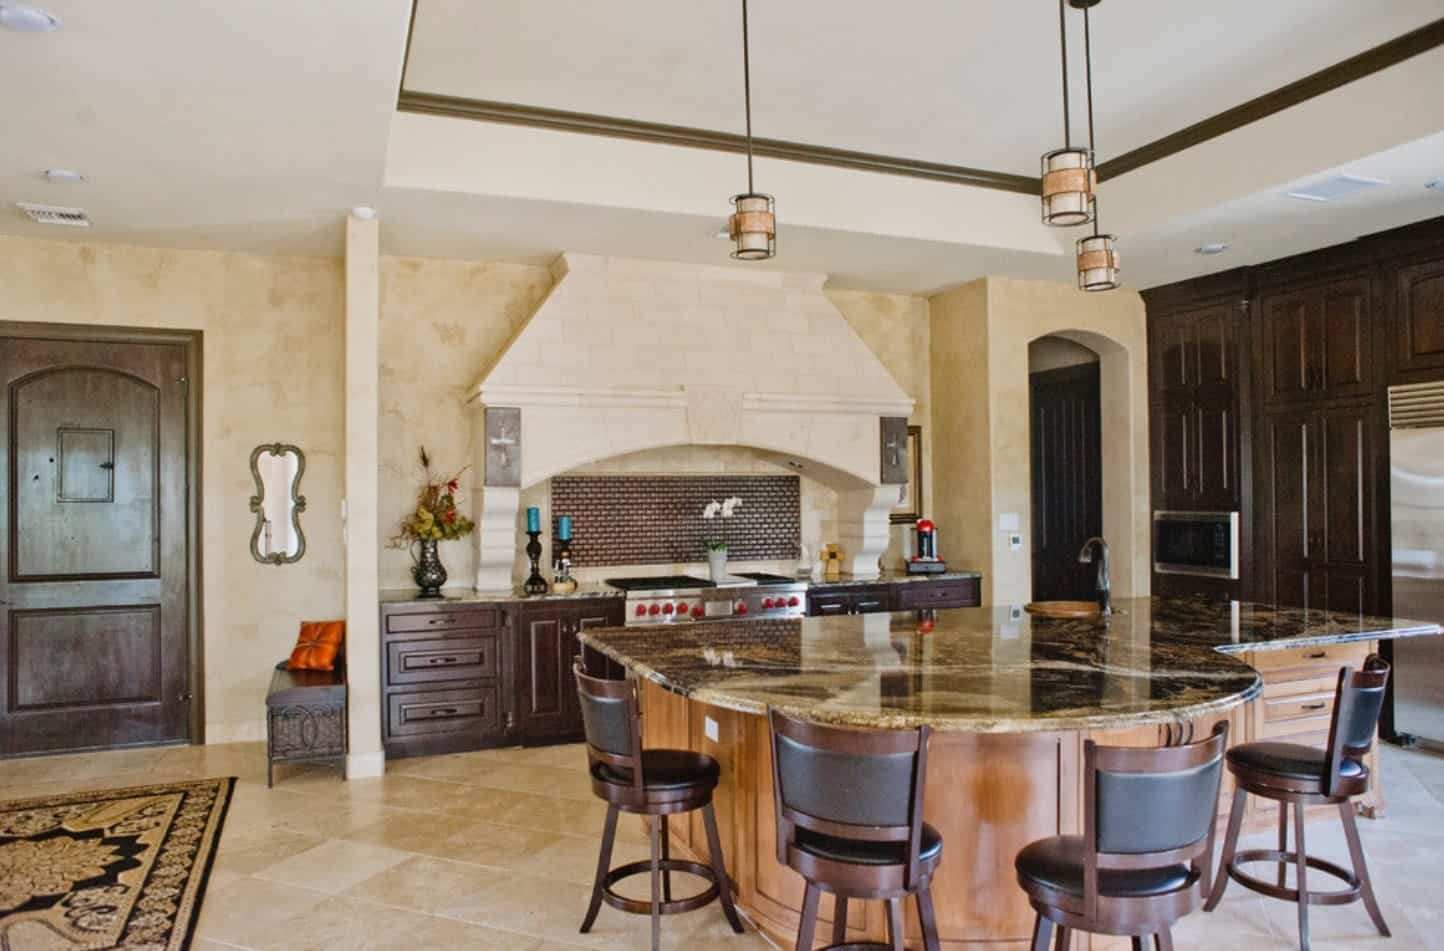 The white tray ceiling of this spacious and bright kitchen bears three charming pendant lights over the large brown marble countertop of the kitchen island large enough for an attached informal dining area with wooden stools that have black leather seats and cushions.